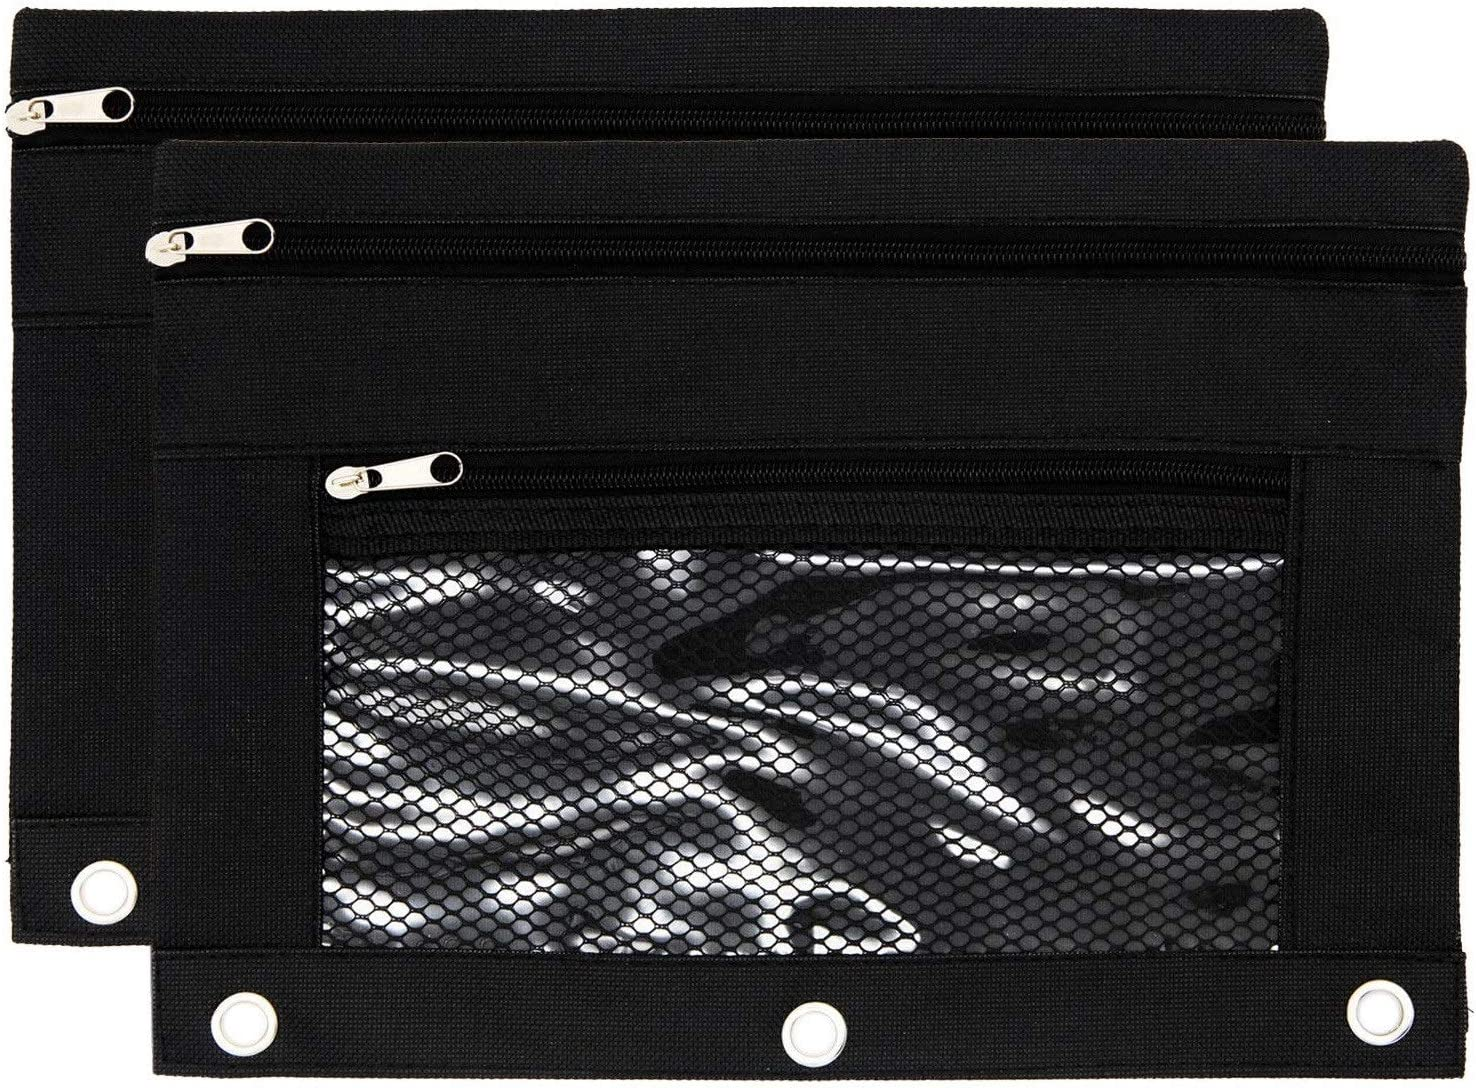 Binder Pencil Pouch with Dual Zipper Pulls Double Pockets Pencil Case with Rivet Enforced 3 Ring and Waterproof Mesh Window for Stationery Organizer/Office Supplies (2PCS - Black)